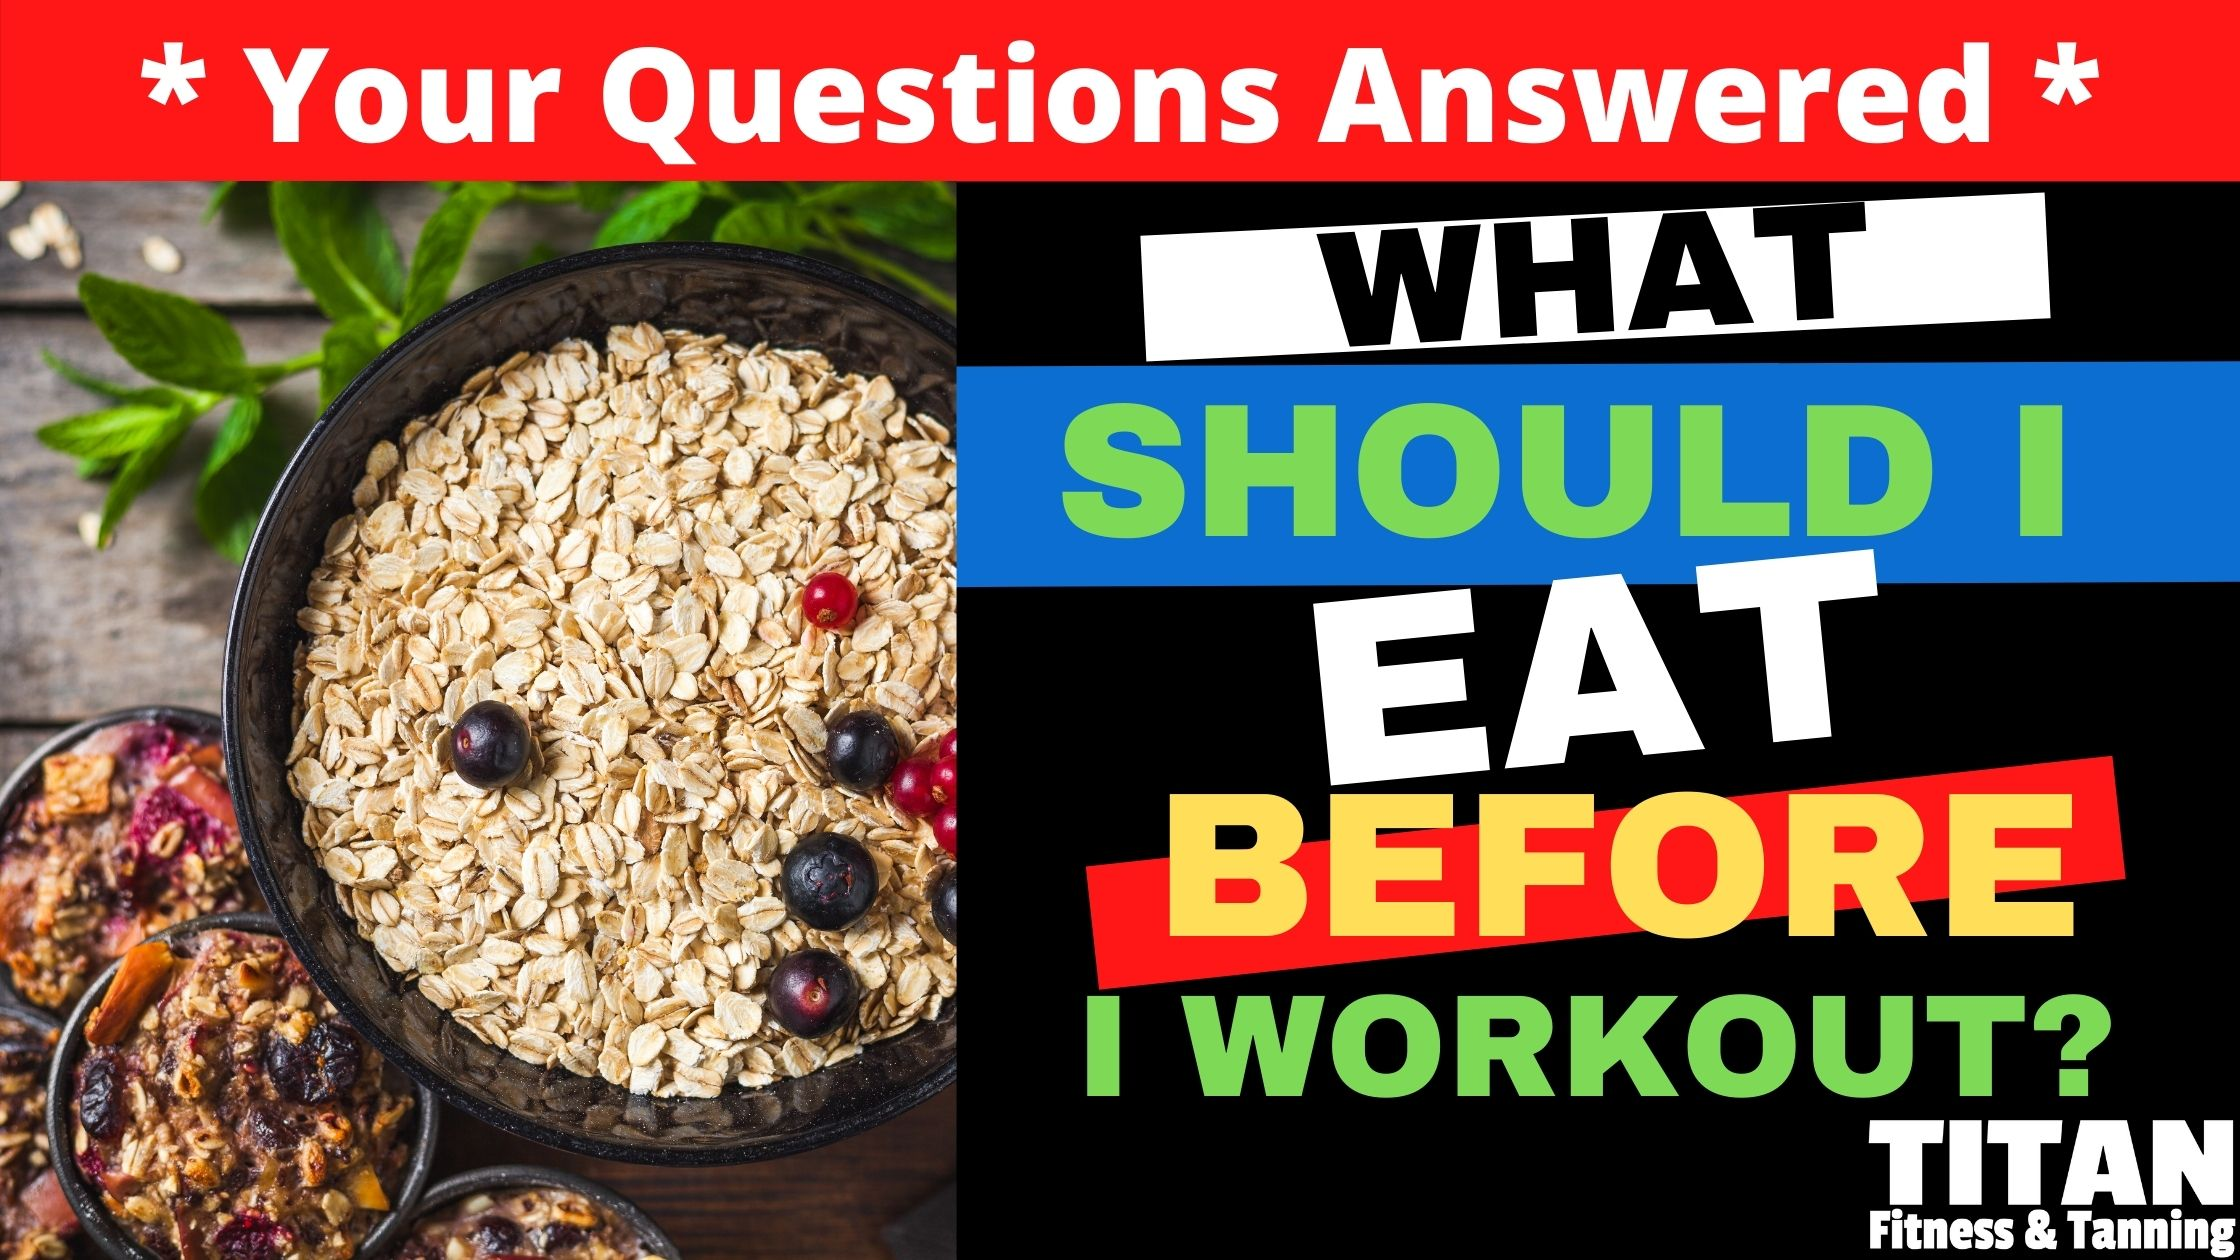 What Should I Eat Before I Workout